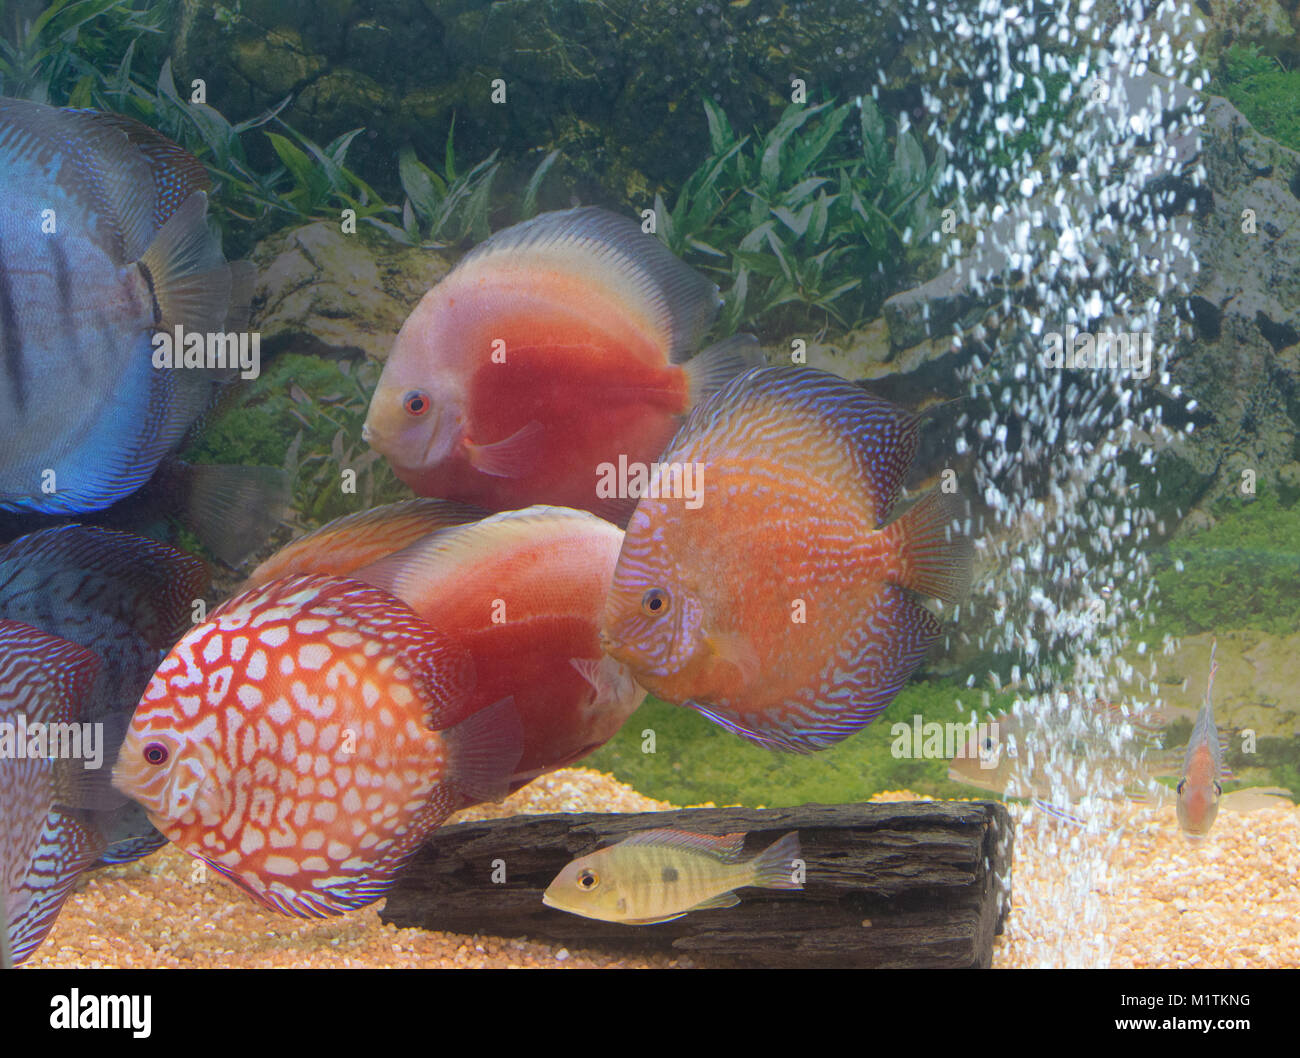 Discus Fishes Stock Photos & Discus Fishes Stock Images - Alamy